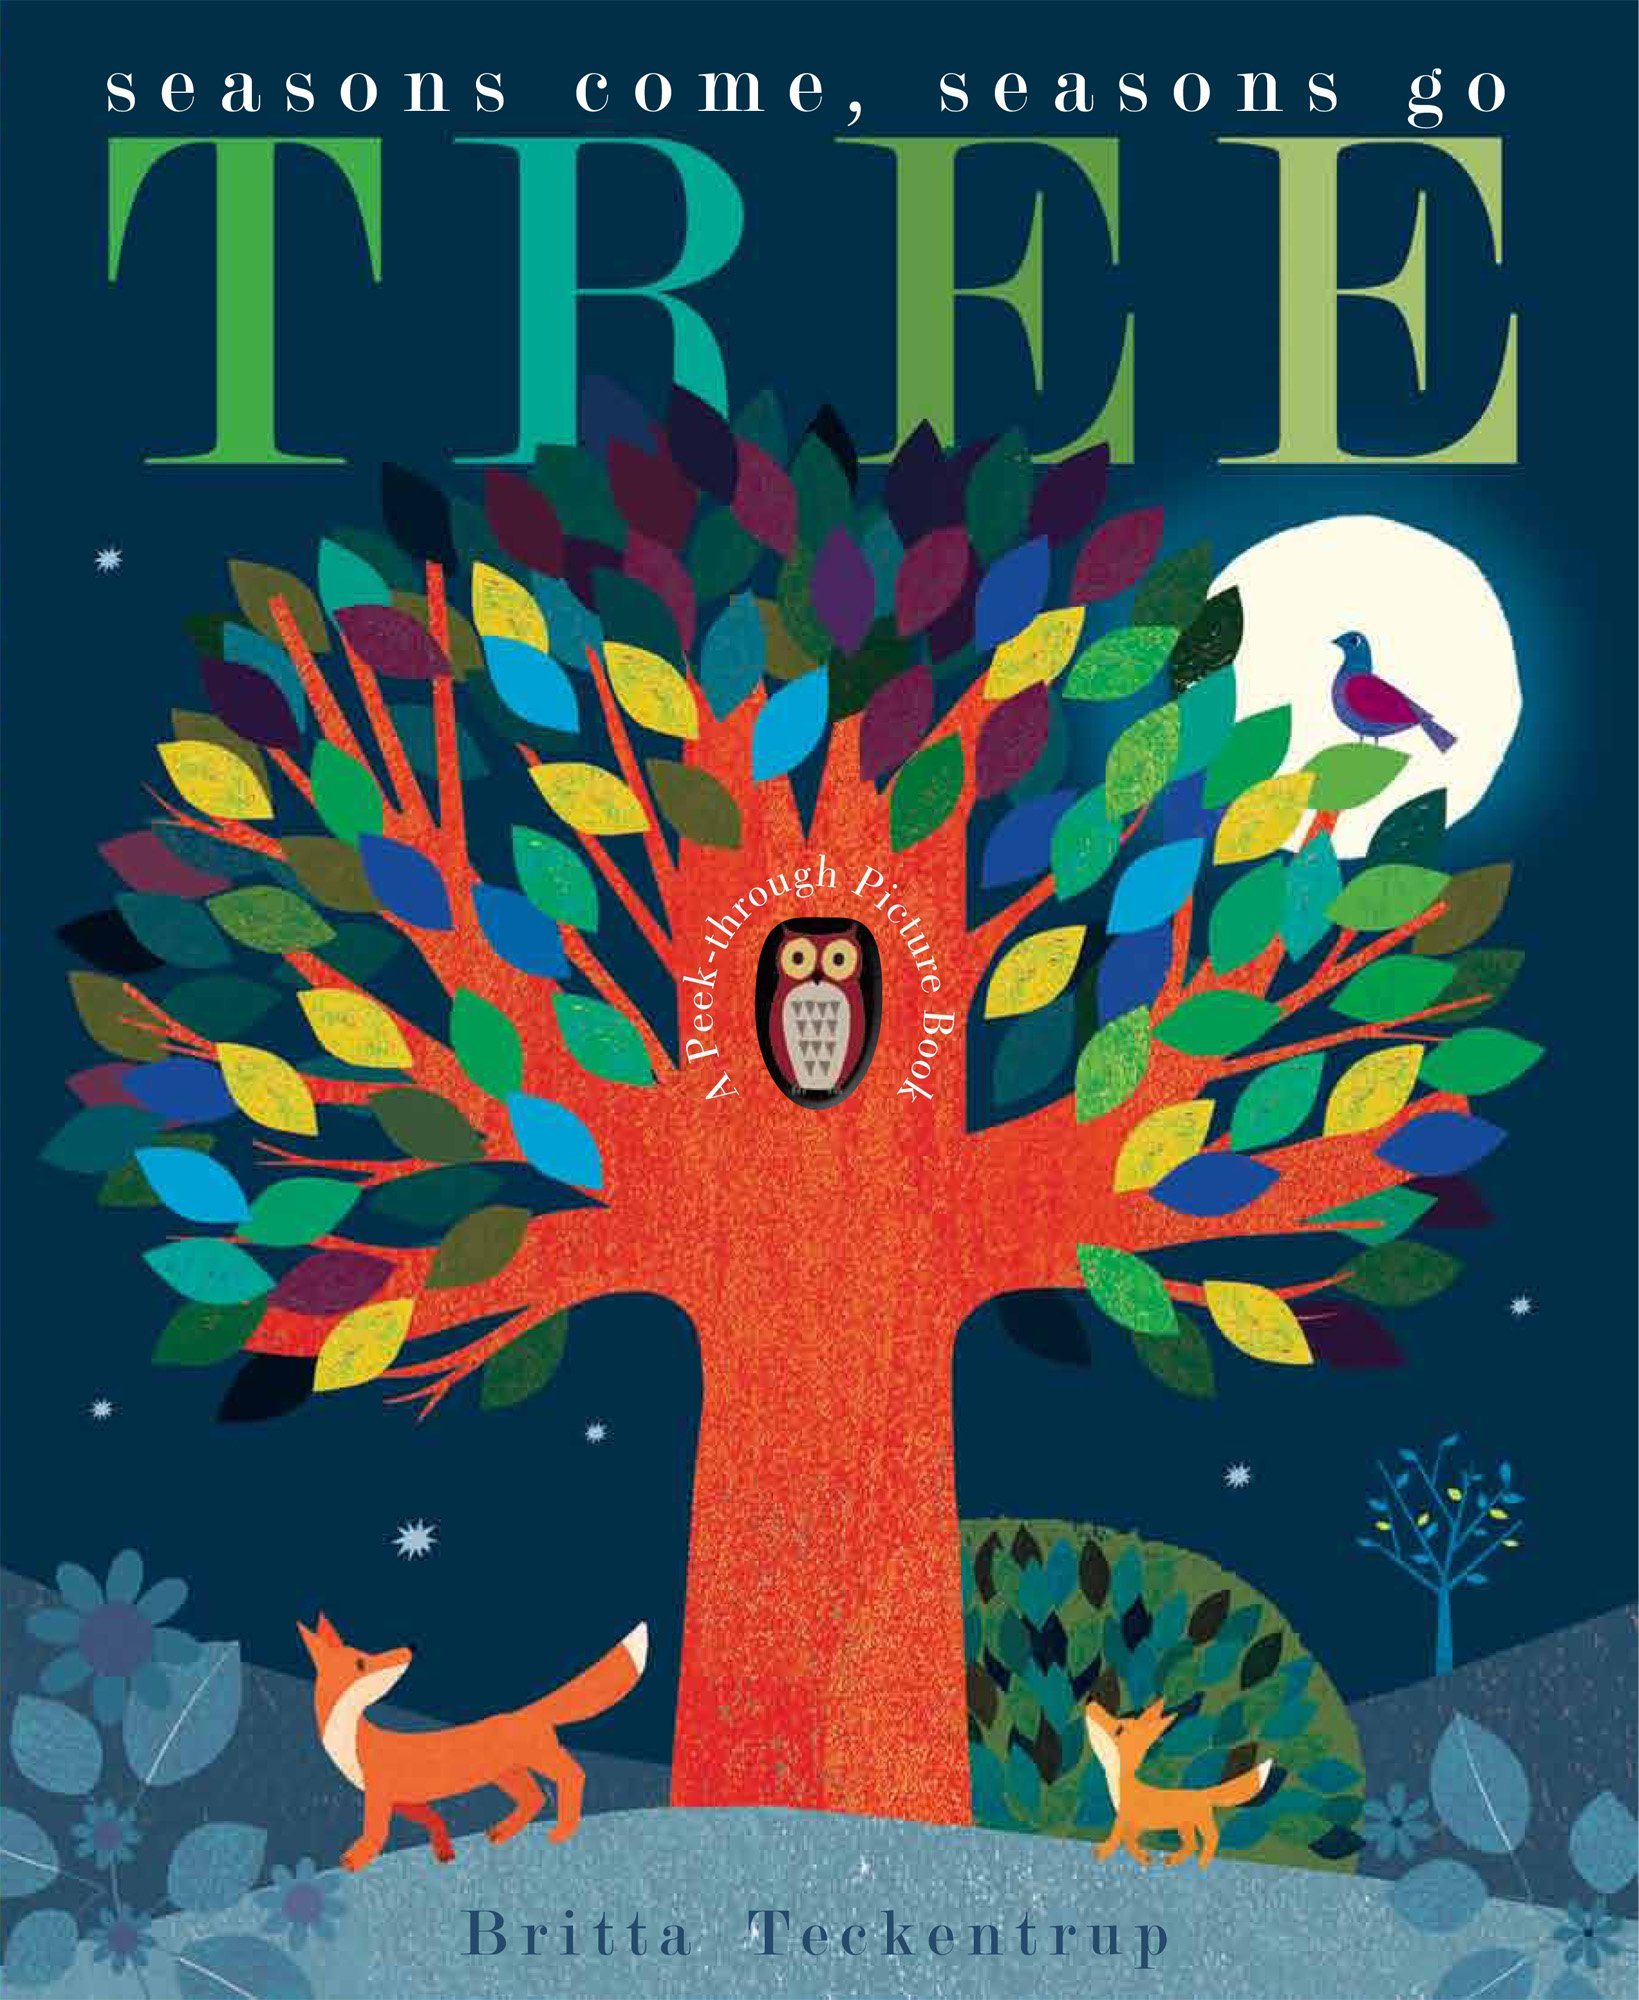 Tree: Seasons Come, Seasons Go: Amazon.co.uk: Hegarty, Patricia, Teckentrup,  Britta: Books